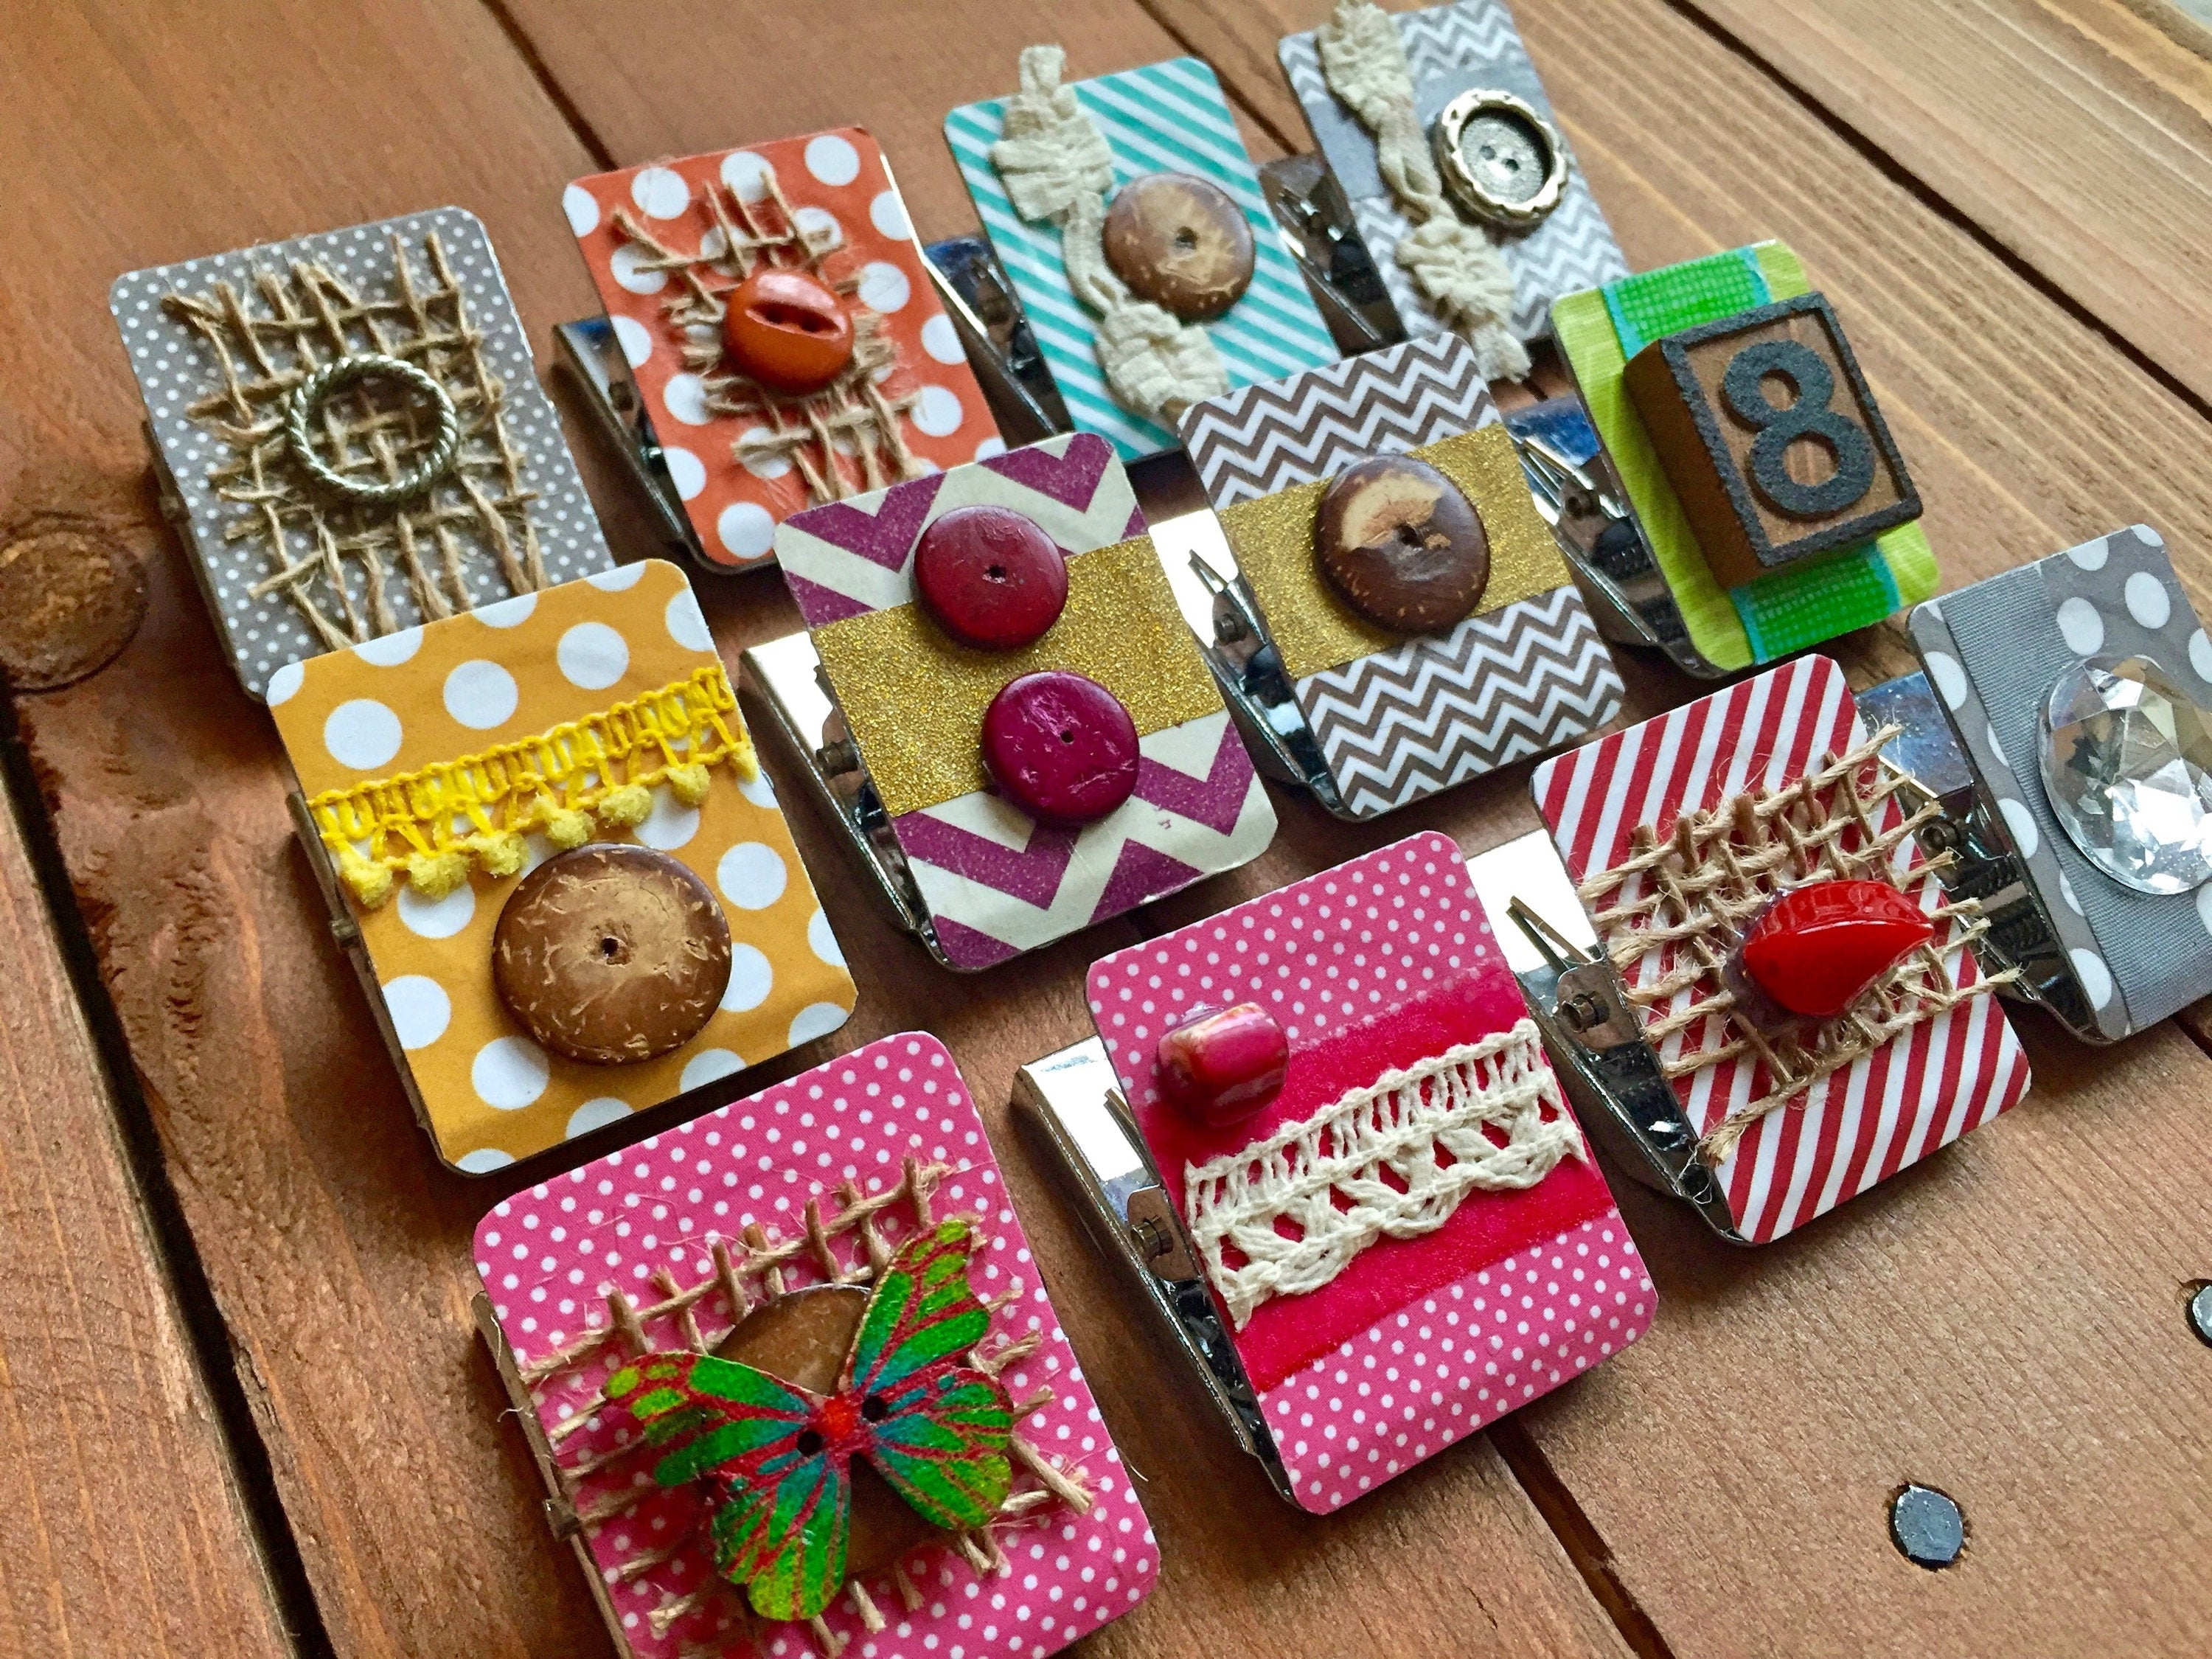 Decorated Refrigerator Magnet Clips, Strong Magnets, Homeschool Decor, Cute Fridge Magnets, Clip Magnet Set, Kitchen Magnets - 1 Magnet